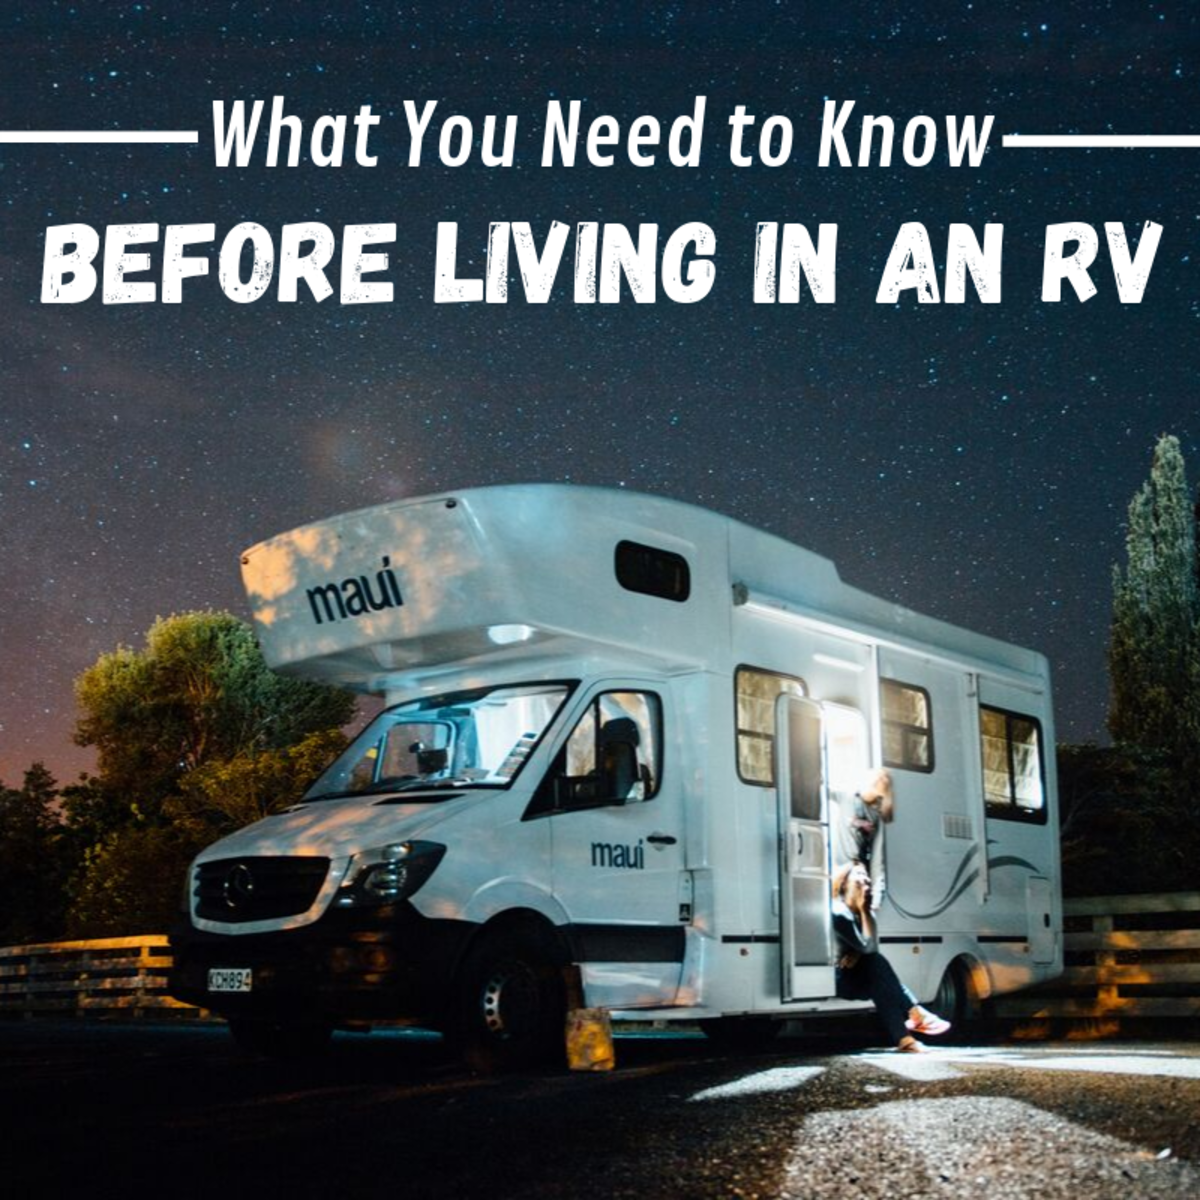 7 Things You Need to Know About Living in an RV